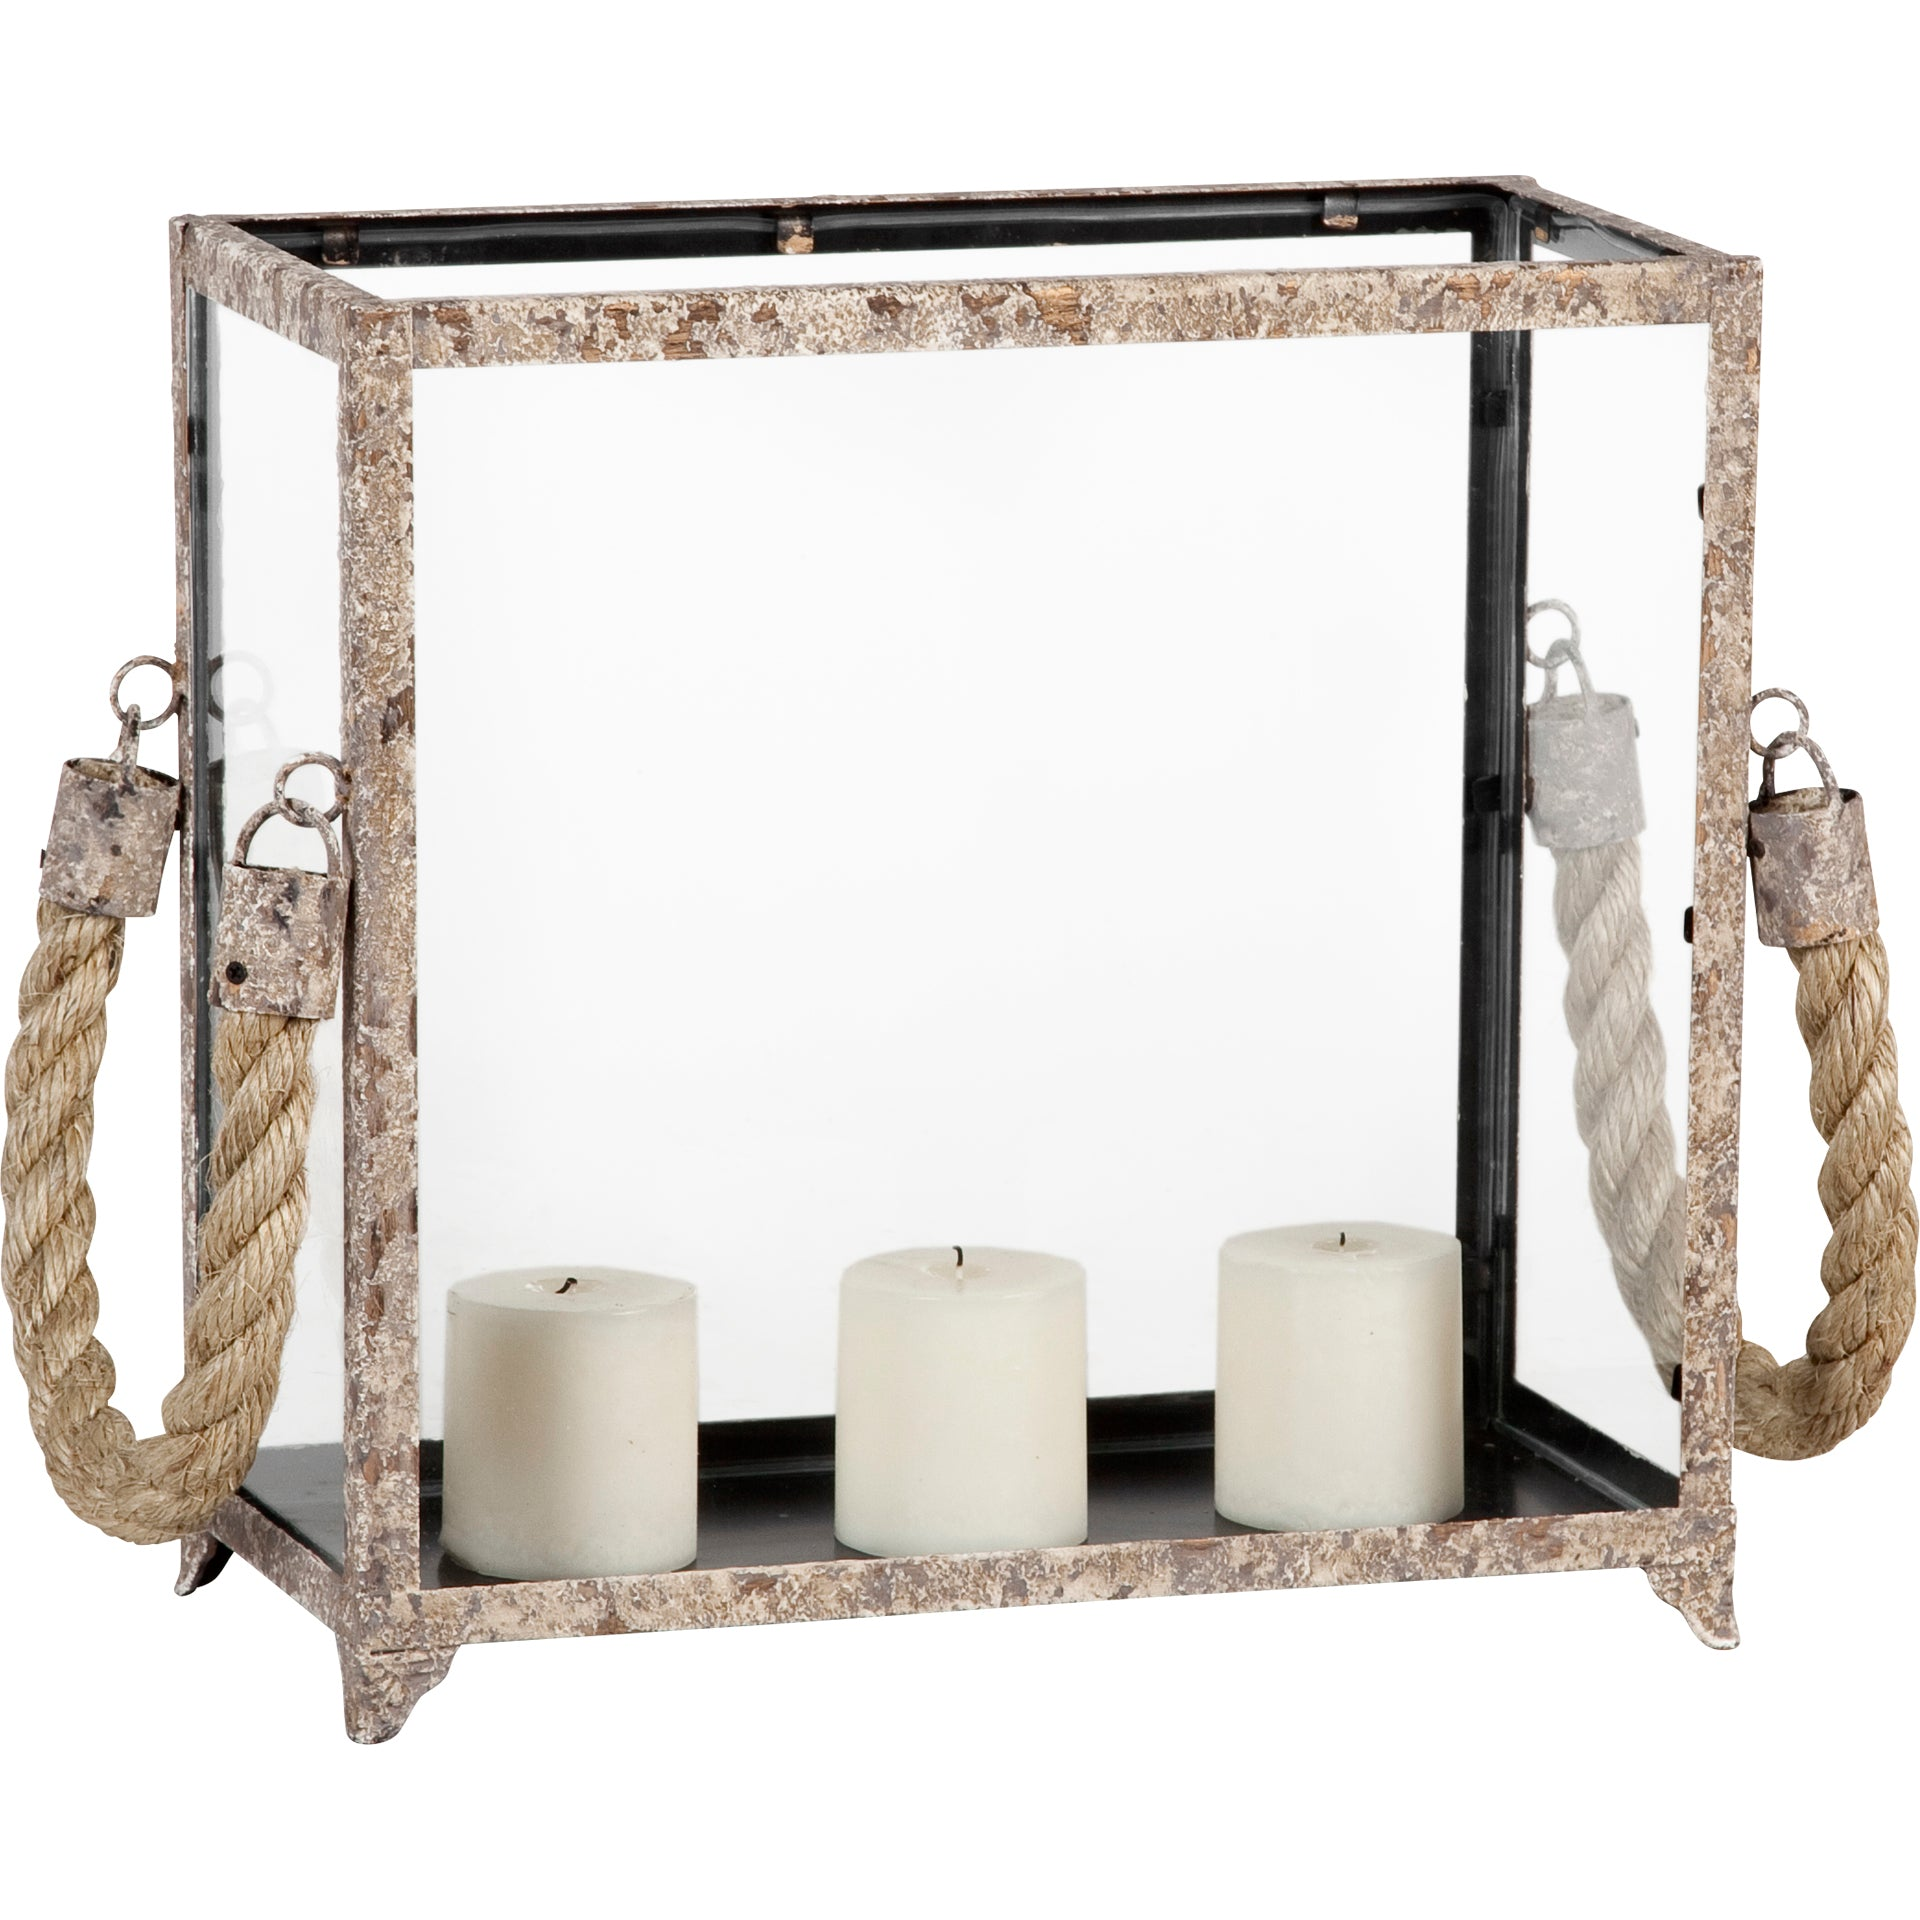 Santorini Glass Candle Box with Rope Handles